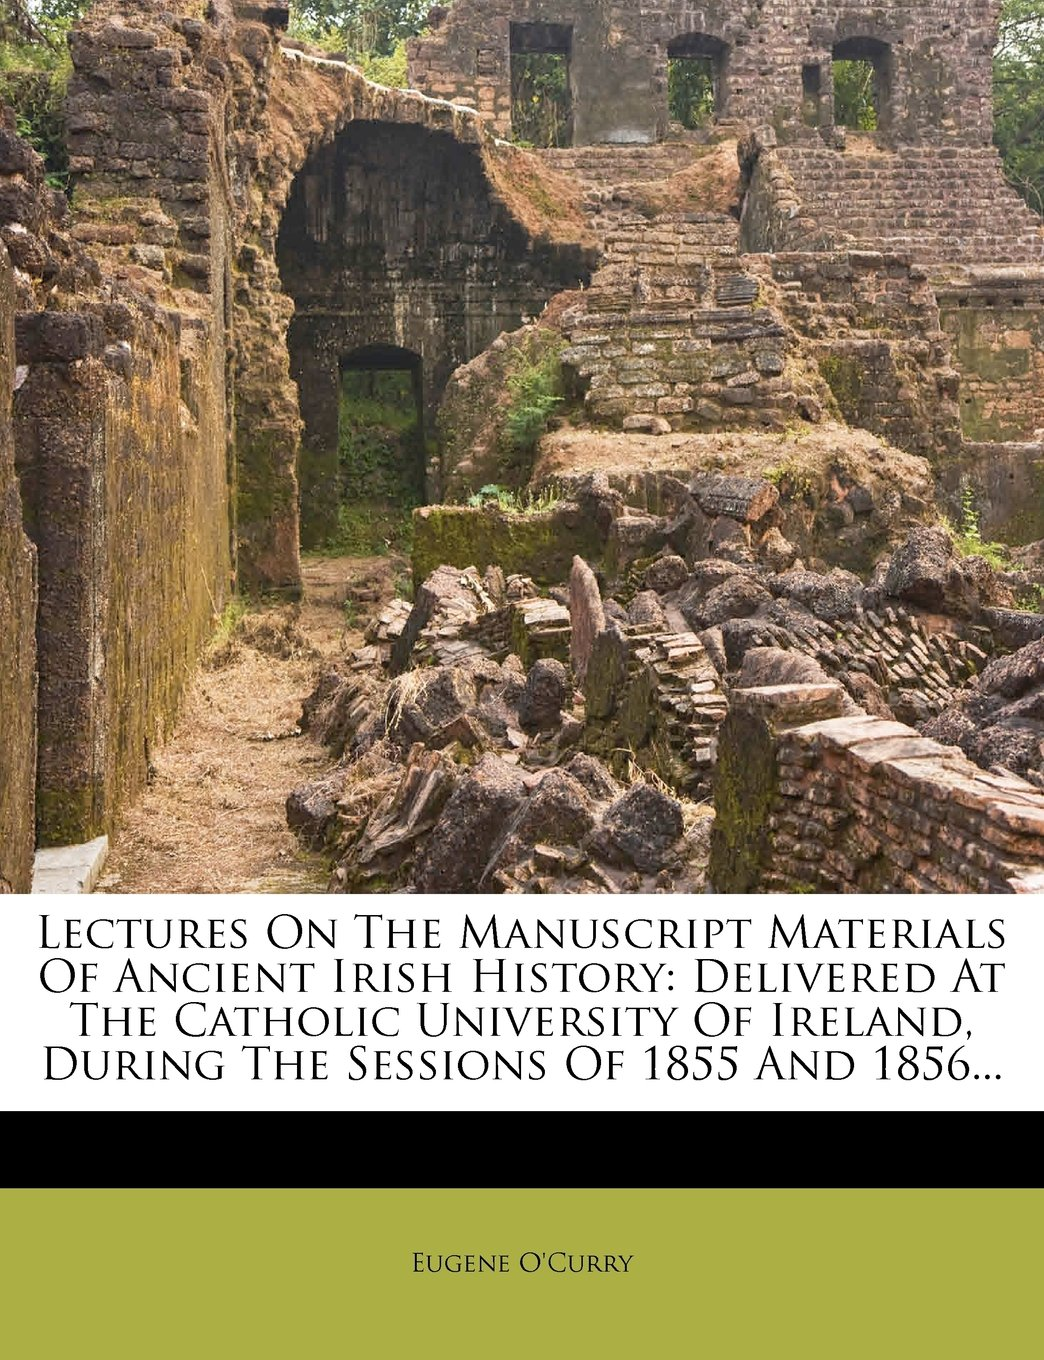 Download Lectures On The Manuscript Materials Of Ancient Irish History: Delivered At The Catholic University Of Ireland, During The Sessions Of 1855 And 1856... ebook